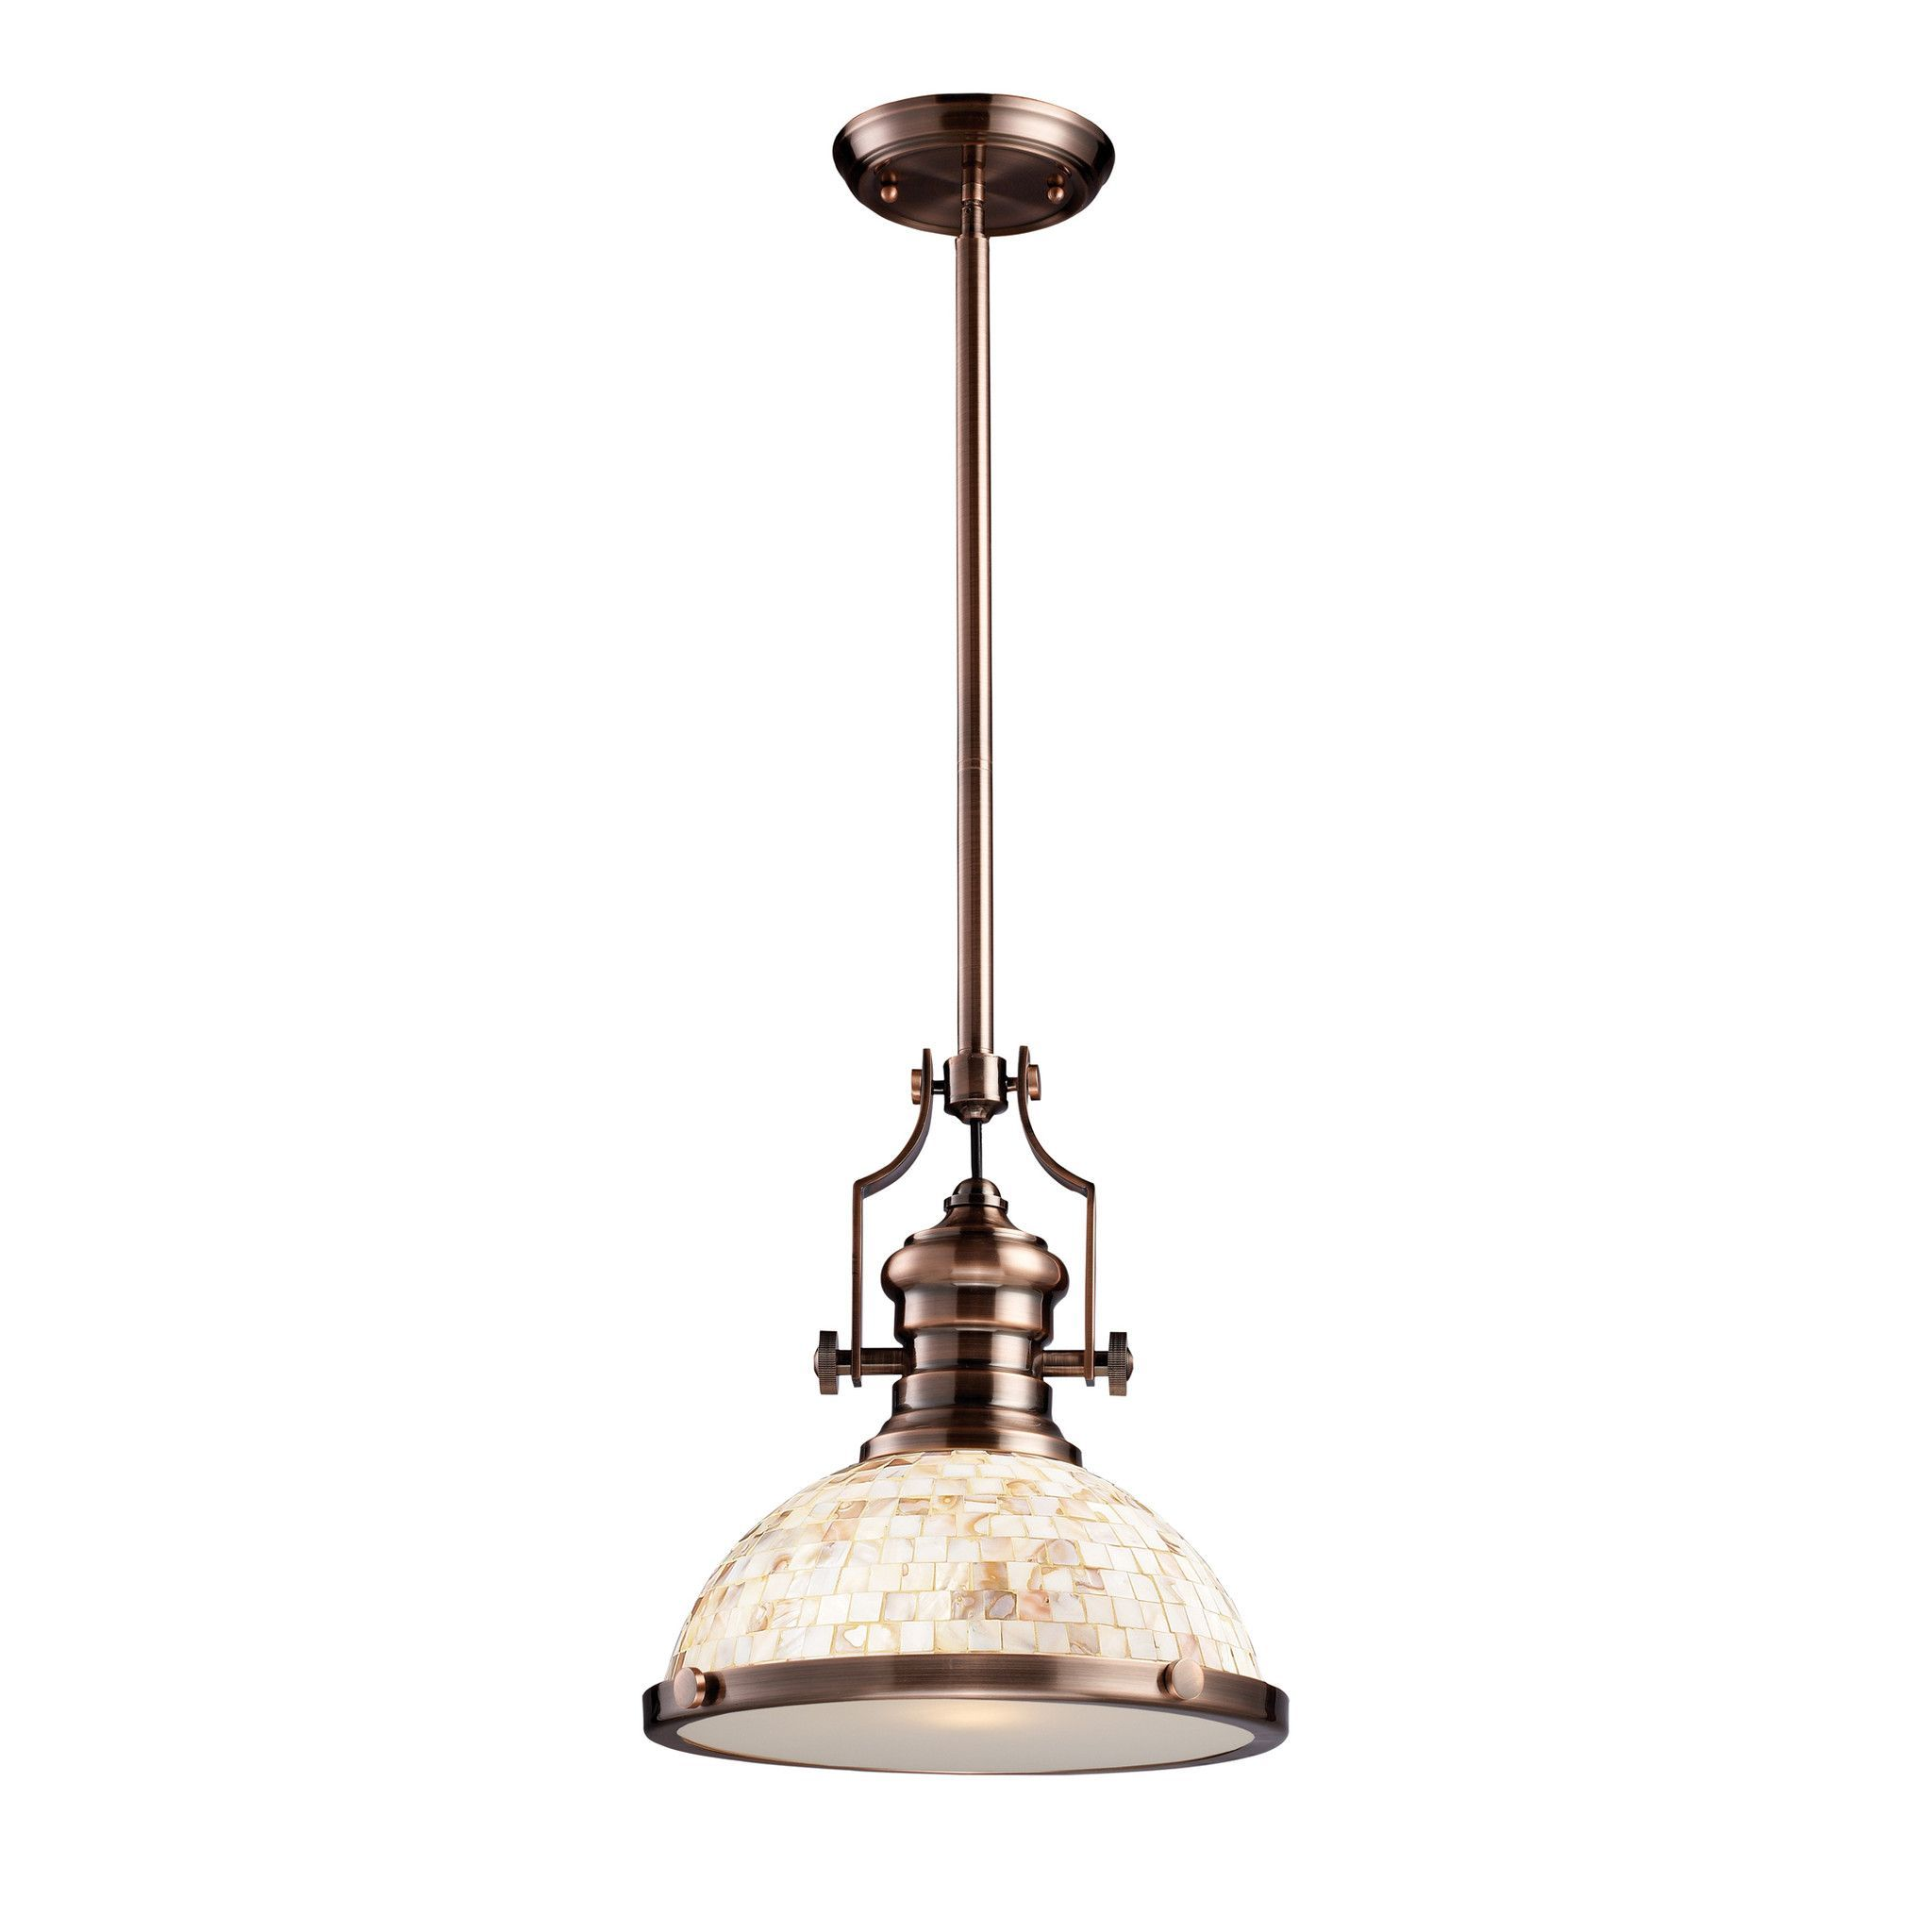 Elk chadwick 1 light pendant antique copper and cappa shell 66443 chadwick antique copper and cappa shell 13 inch one light pendant elk lighting dome pendan arubaitofo Image collections